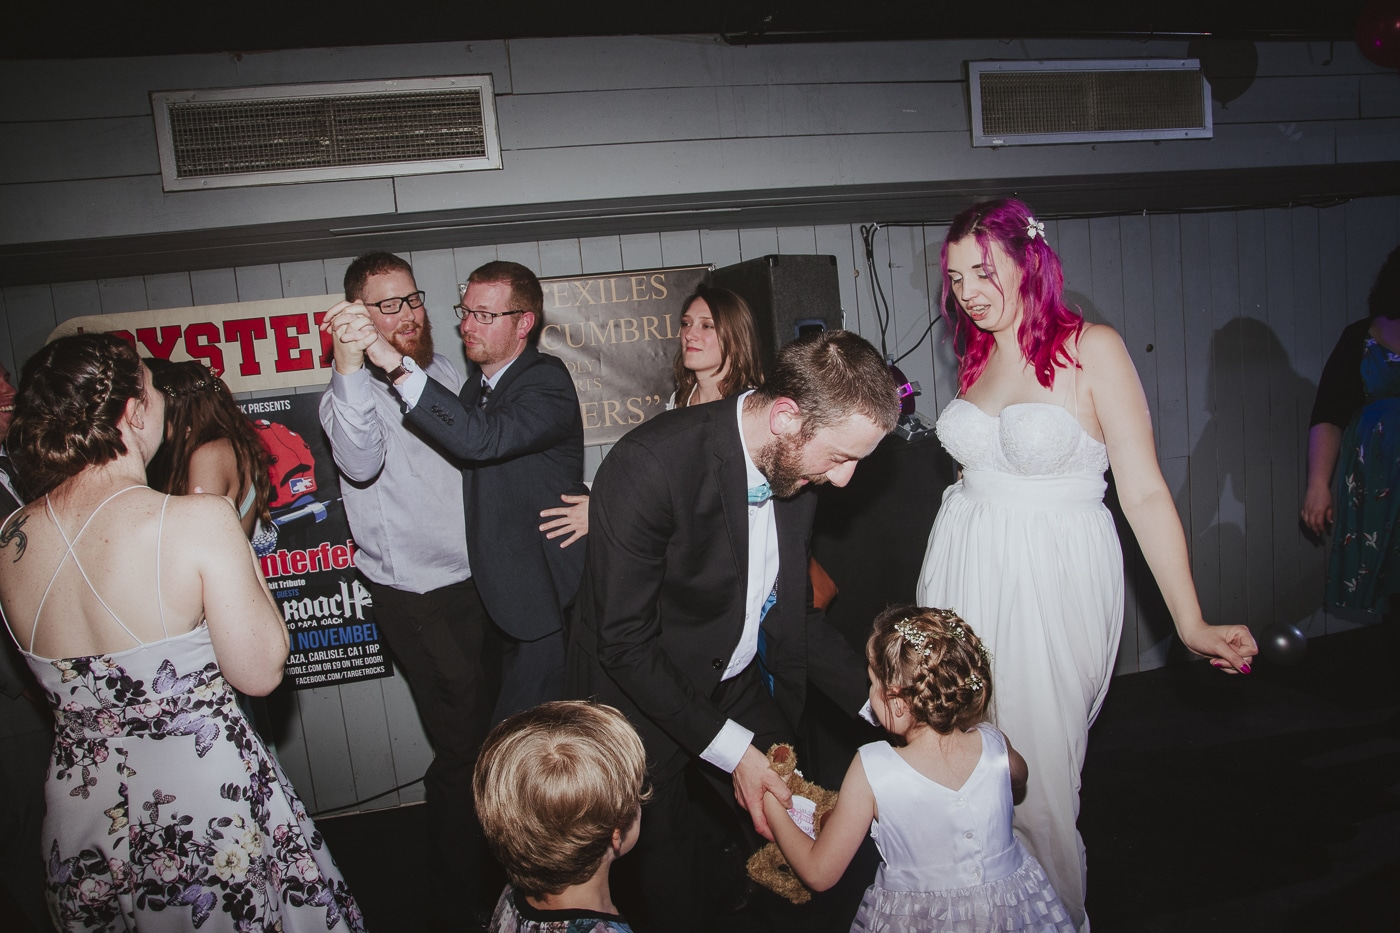 Bride and groom dancing at wedding by Joshua Wyborn Photographic